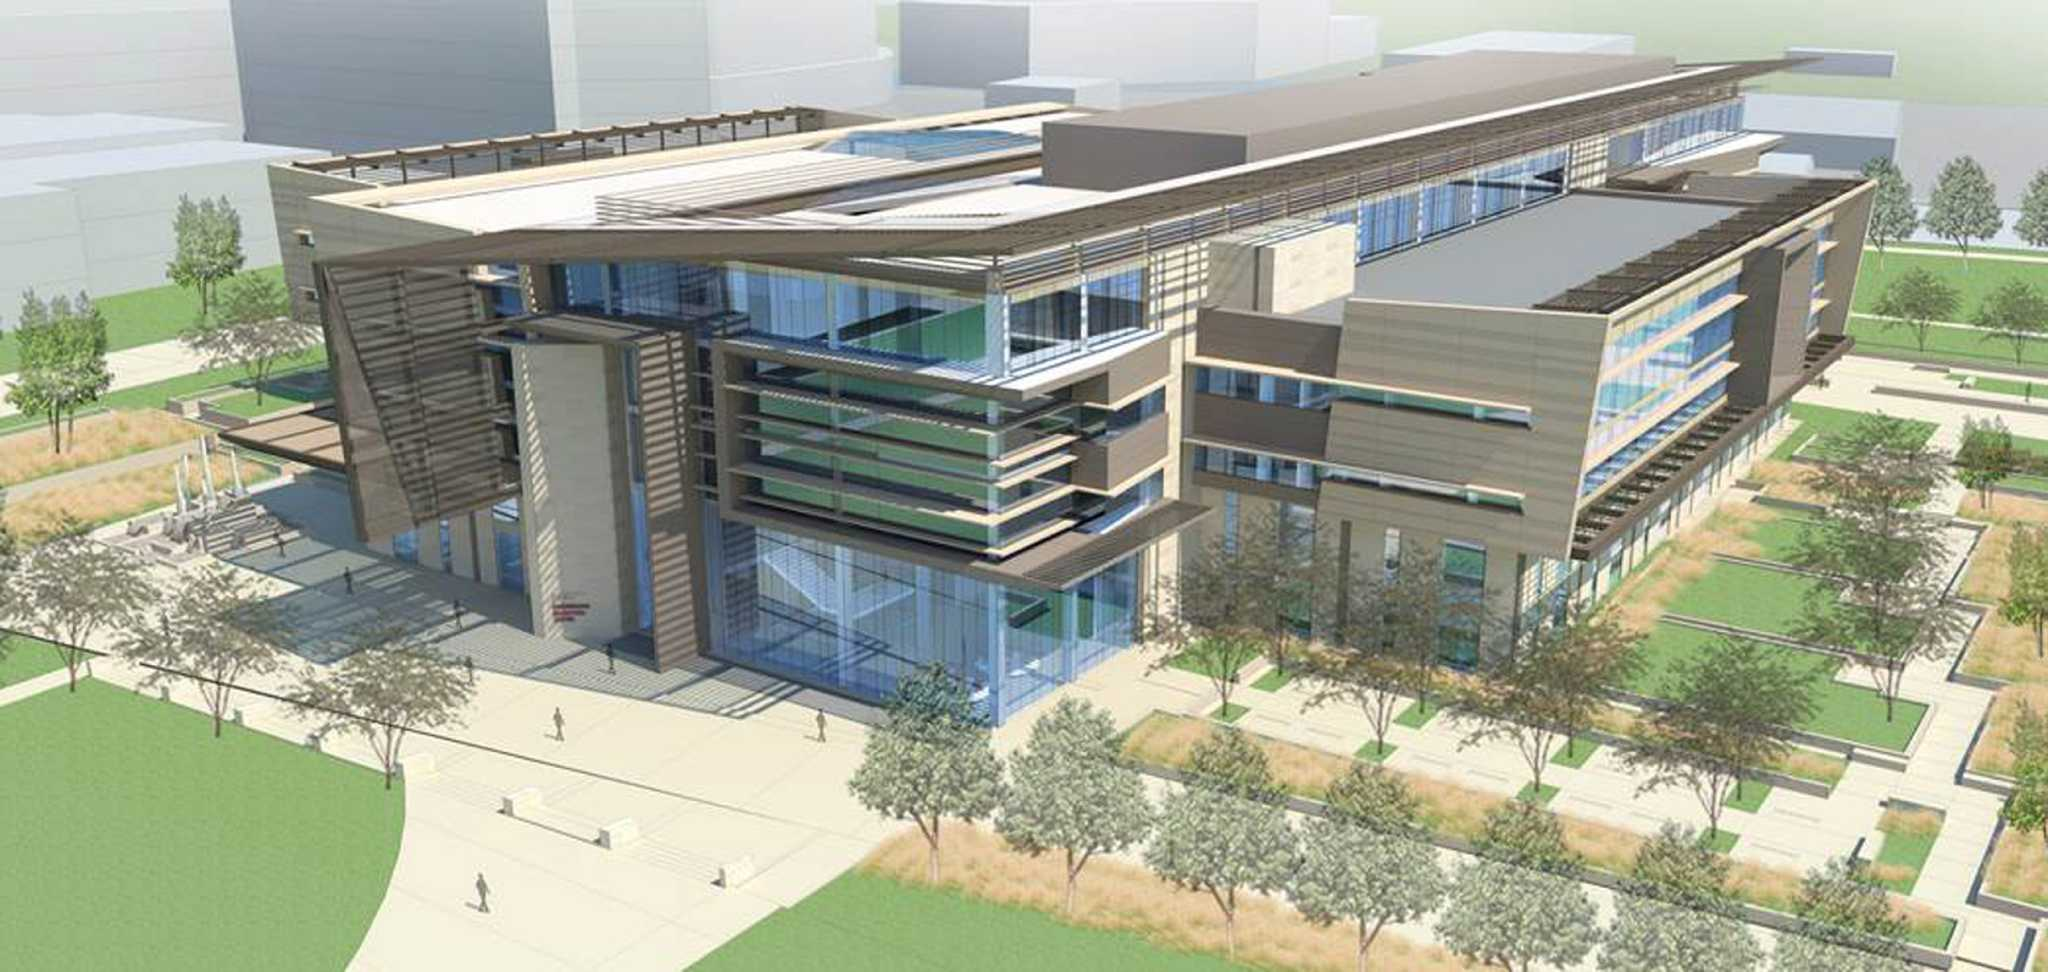 Zachry pitches in $25 million to help train engineers - San Antonio ...